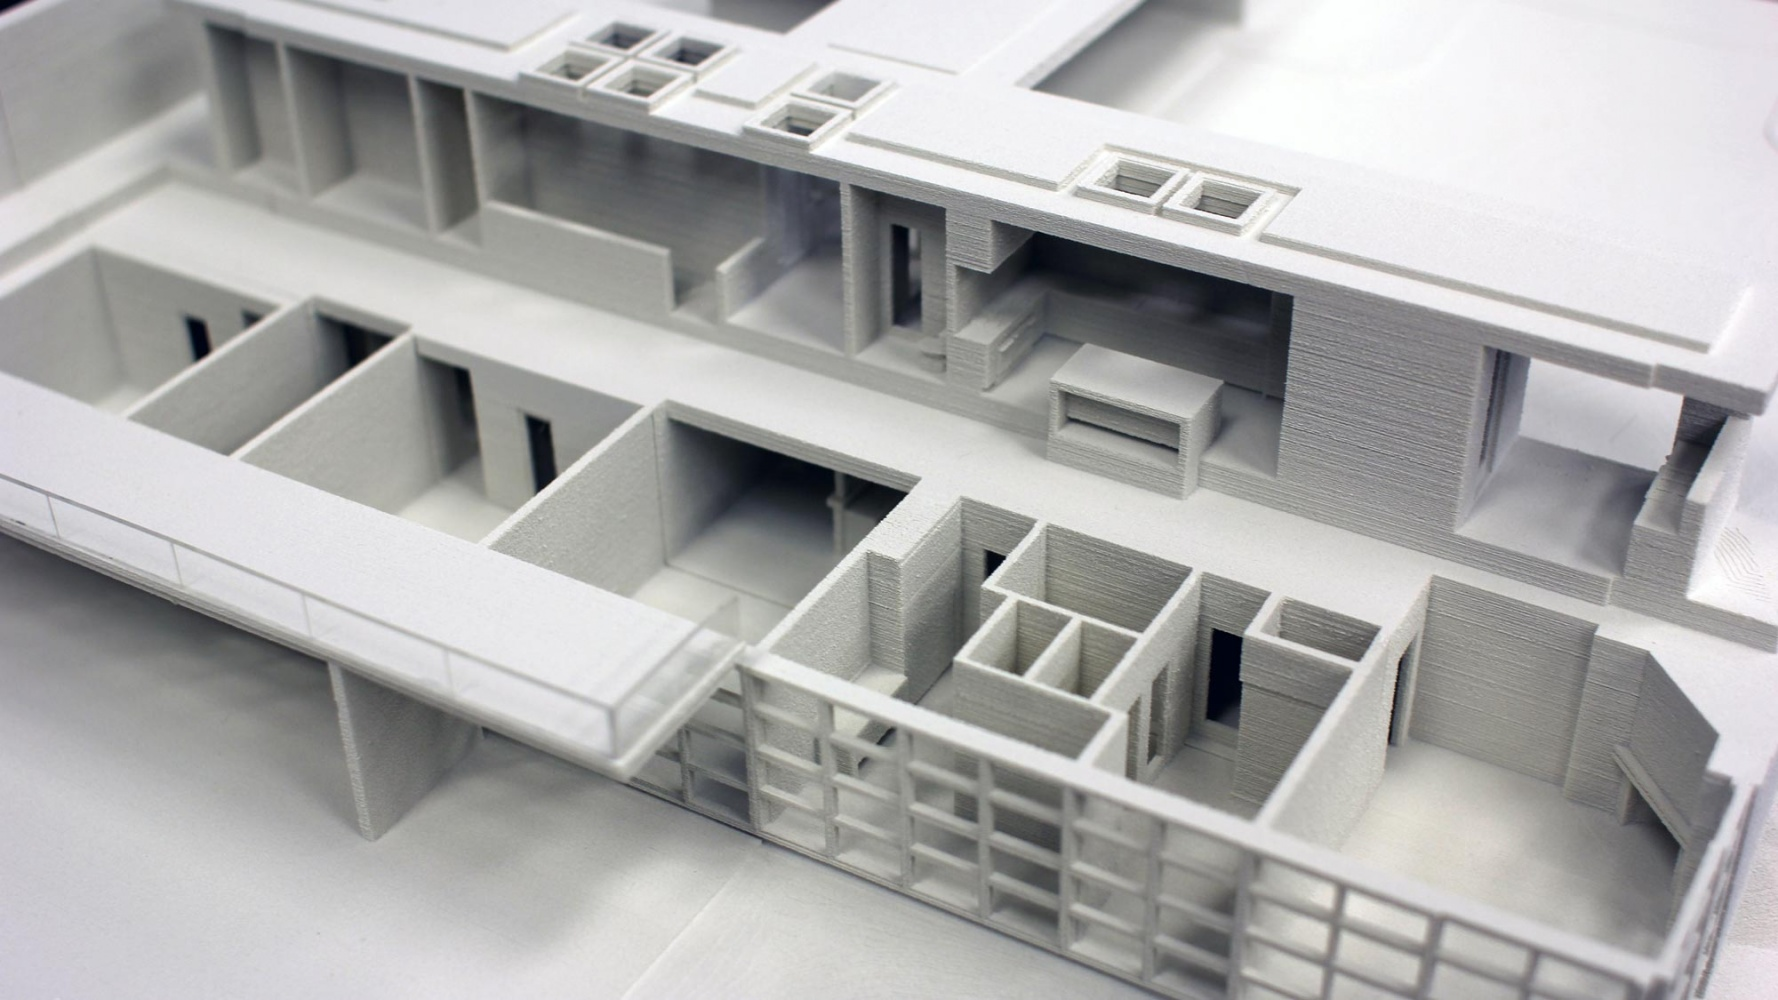 The Window Residential Study Model Platt Architecture 3d Print Detail